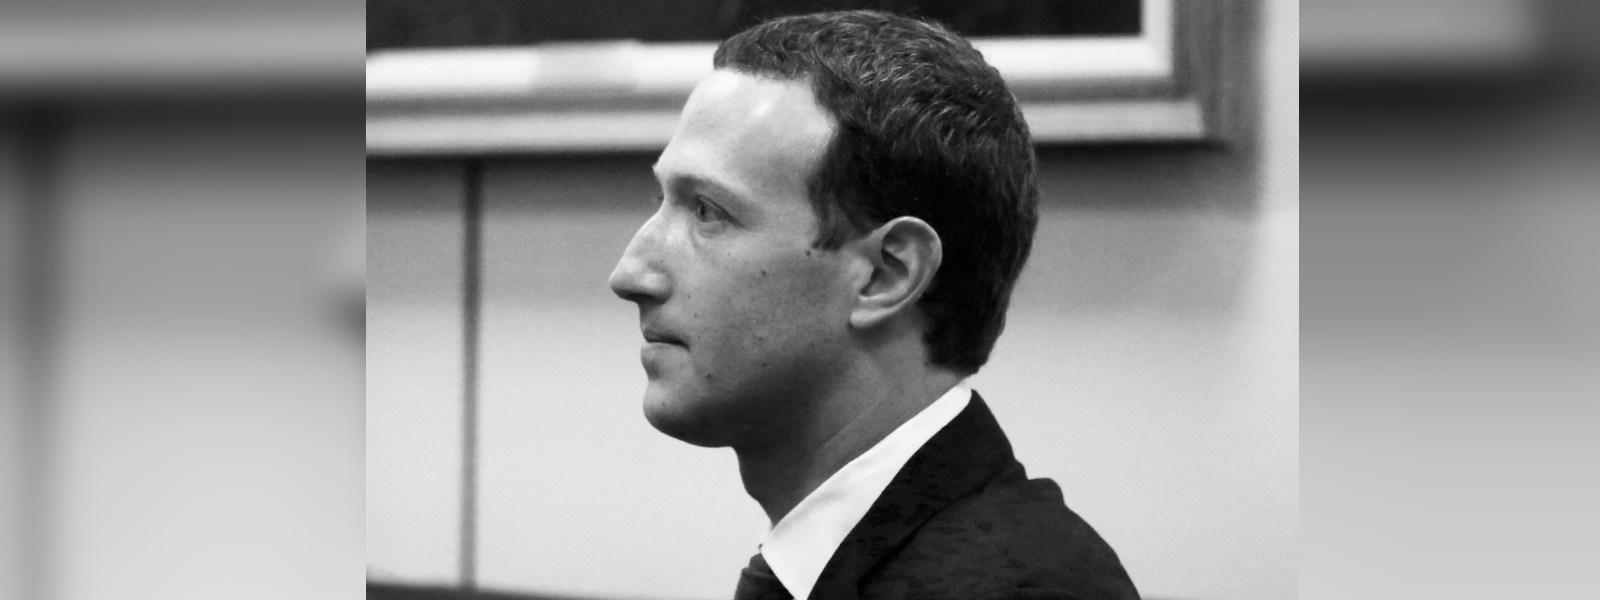 Facebook to pay US $5 bn fine for privacy violations: Reuters